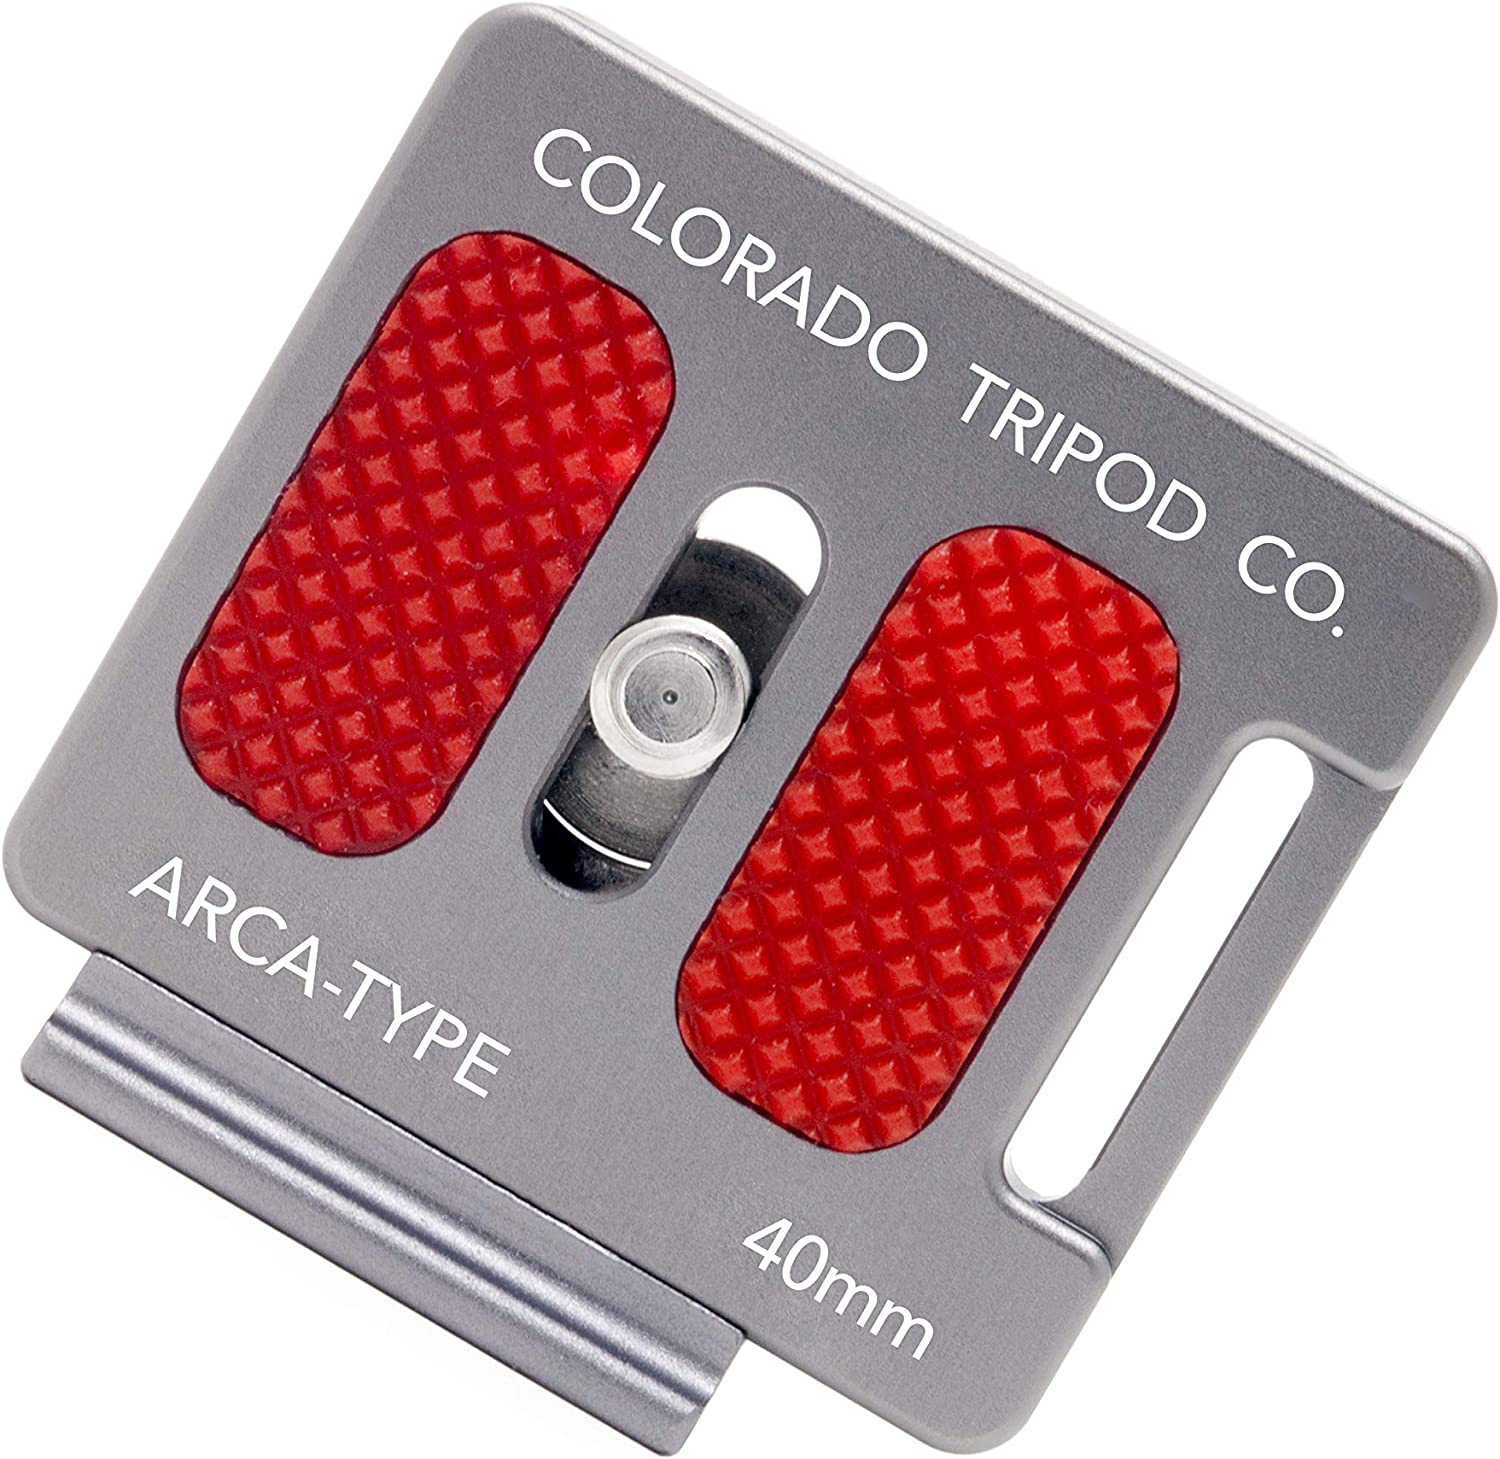 Colorado Tripod Arca Plates 40mm Universal Arca Swiss Quick Release Plate for Tripod Ball Head with Hand-Adjustable Stainless Steel Screw & Removable Rear Stopper - Gunmetal Color